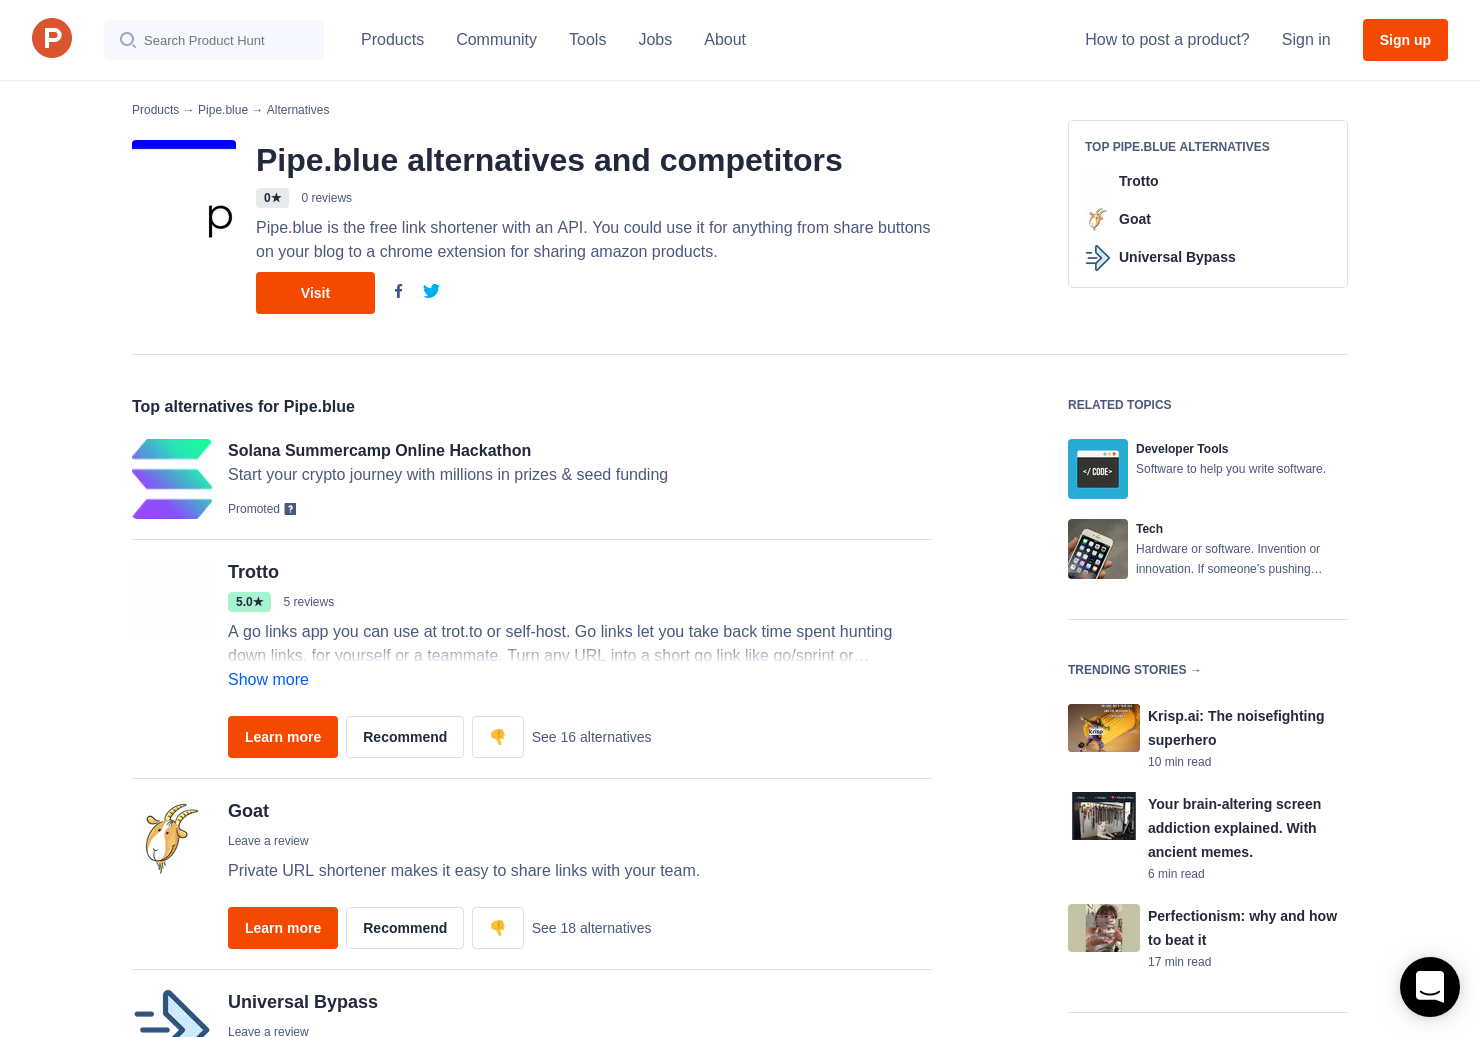 5 Alternatives to Pipe blue | Product Hunt